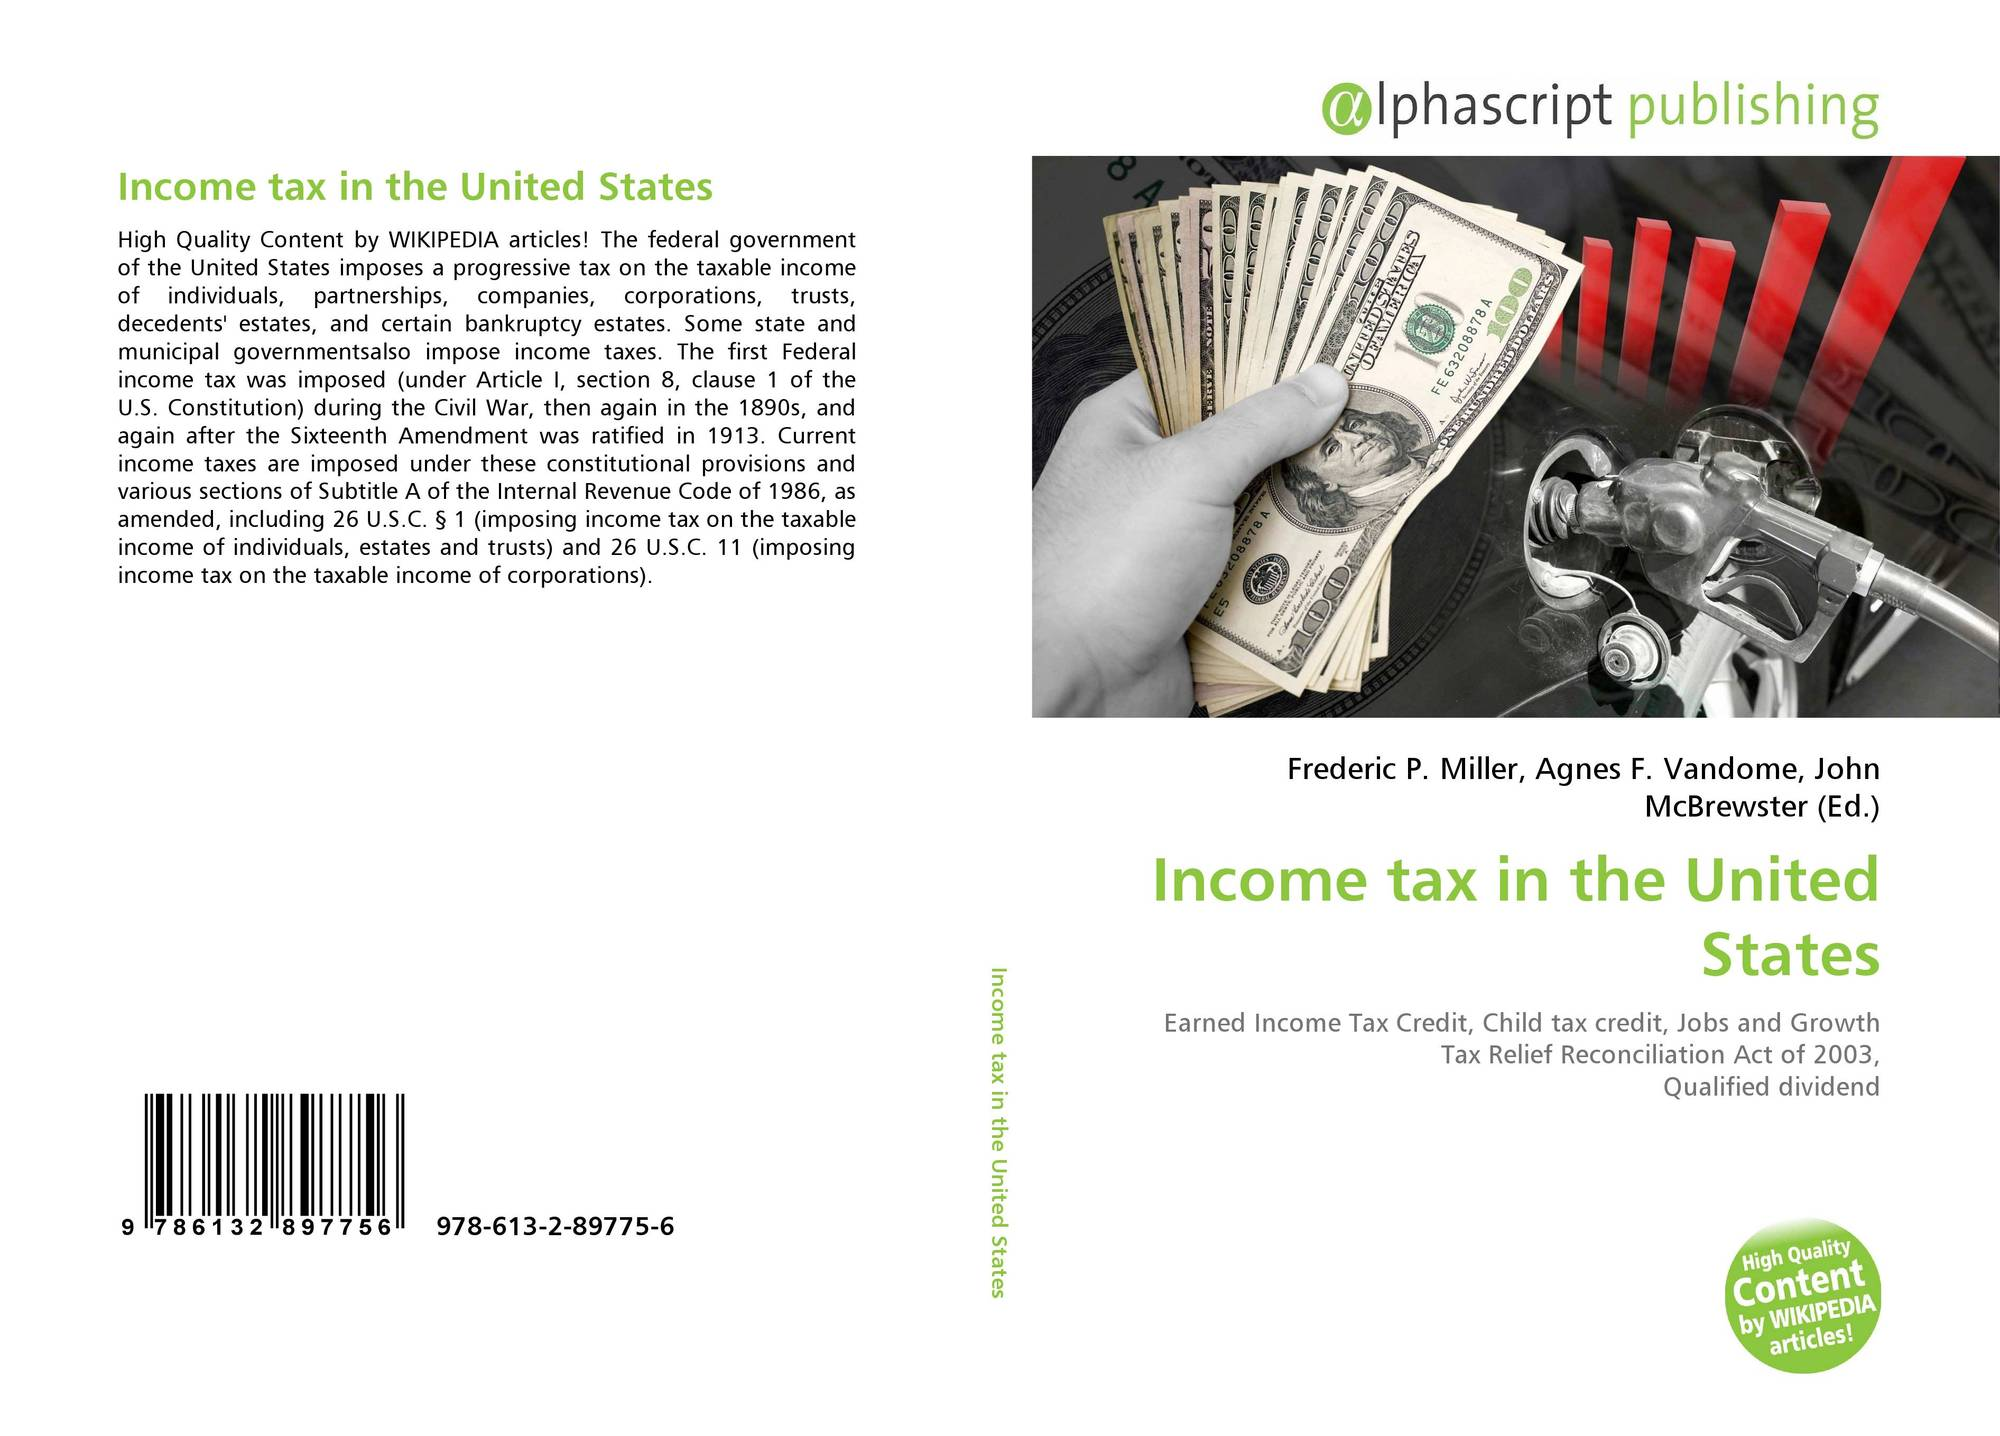 an analysis of the issue of federal progressive income tax in the united states of america In this report, jonathan s brenner and josiah p child identify anomalies within the rules and definitions for foreign-derived intangible income (fdii), and they describe how those problems, when combined with inconsistencies between the fdii regime and the global intangible low-taxed income regime, distort tax consequences and incentives.